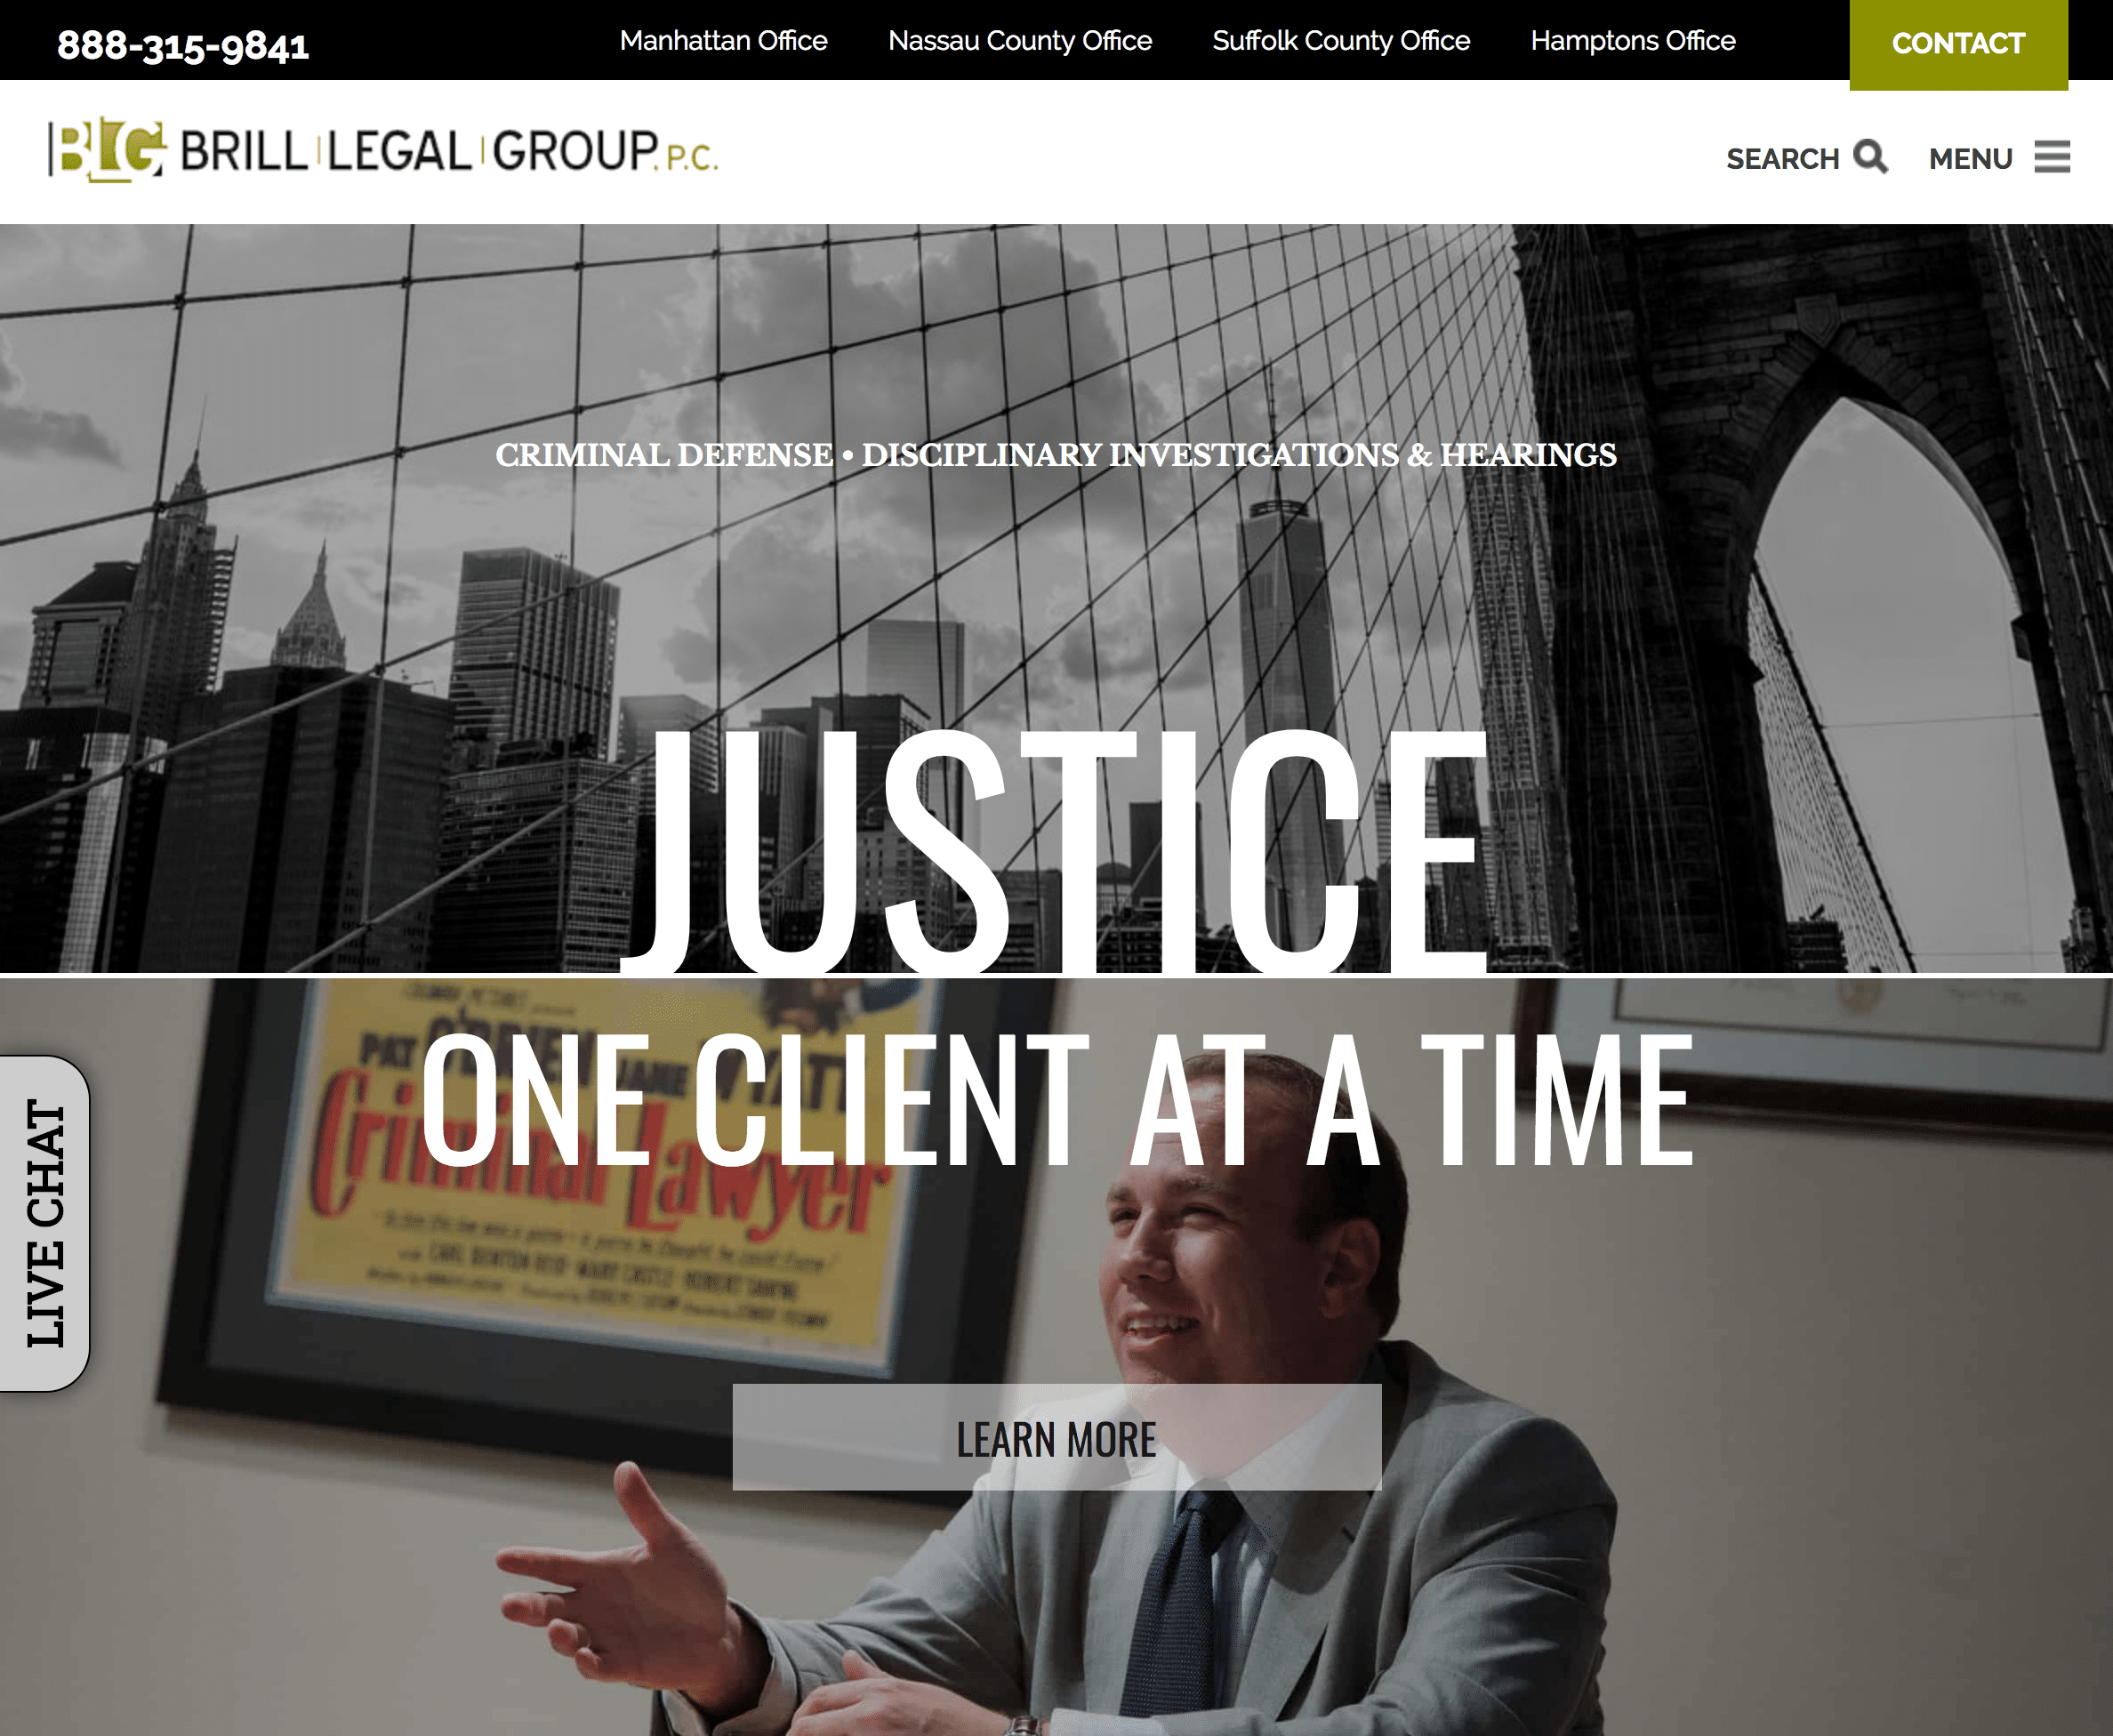 Brill Legal Group